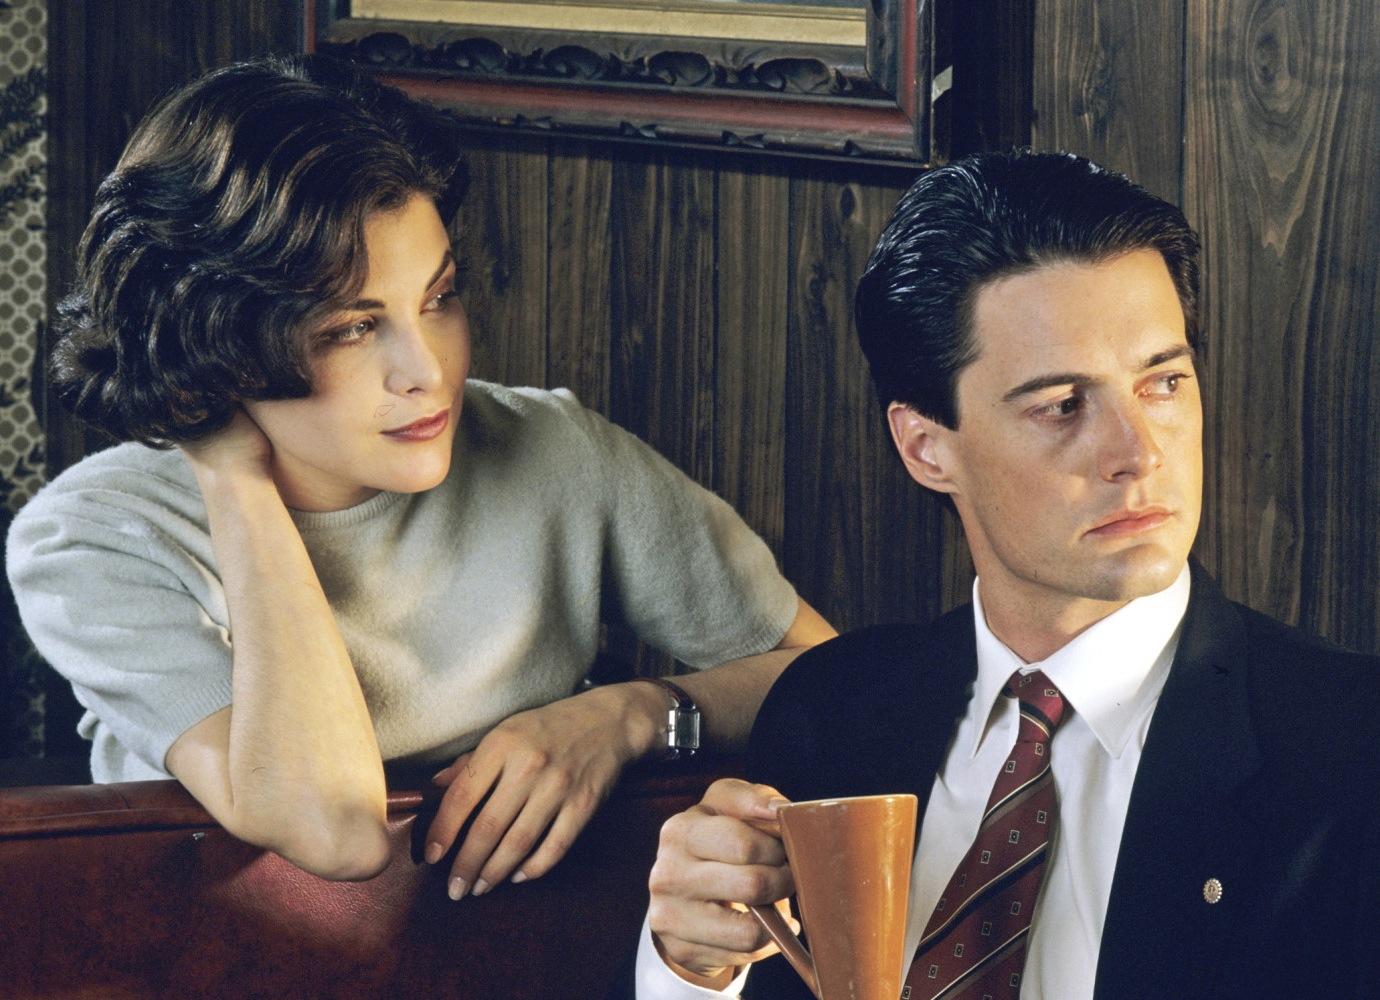 'Twin Peaks' Cast For Remake Revealed